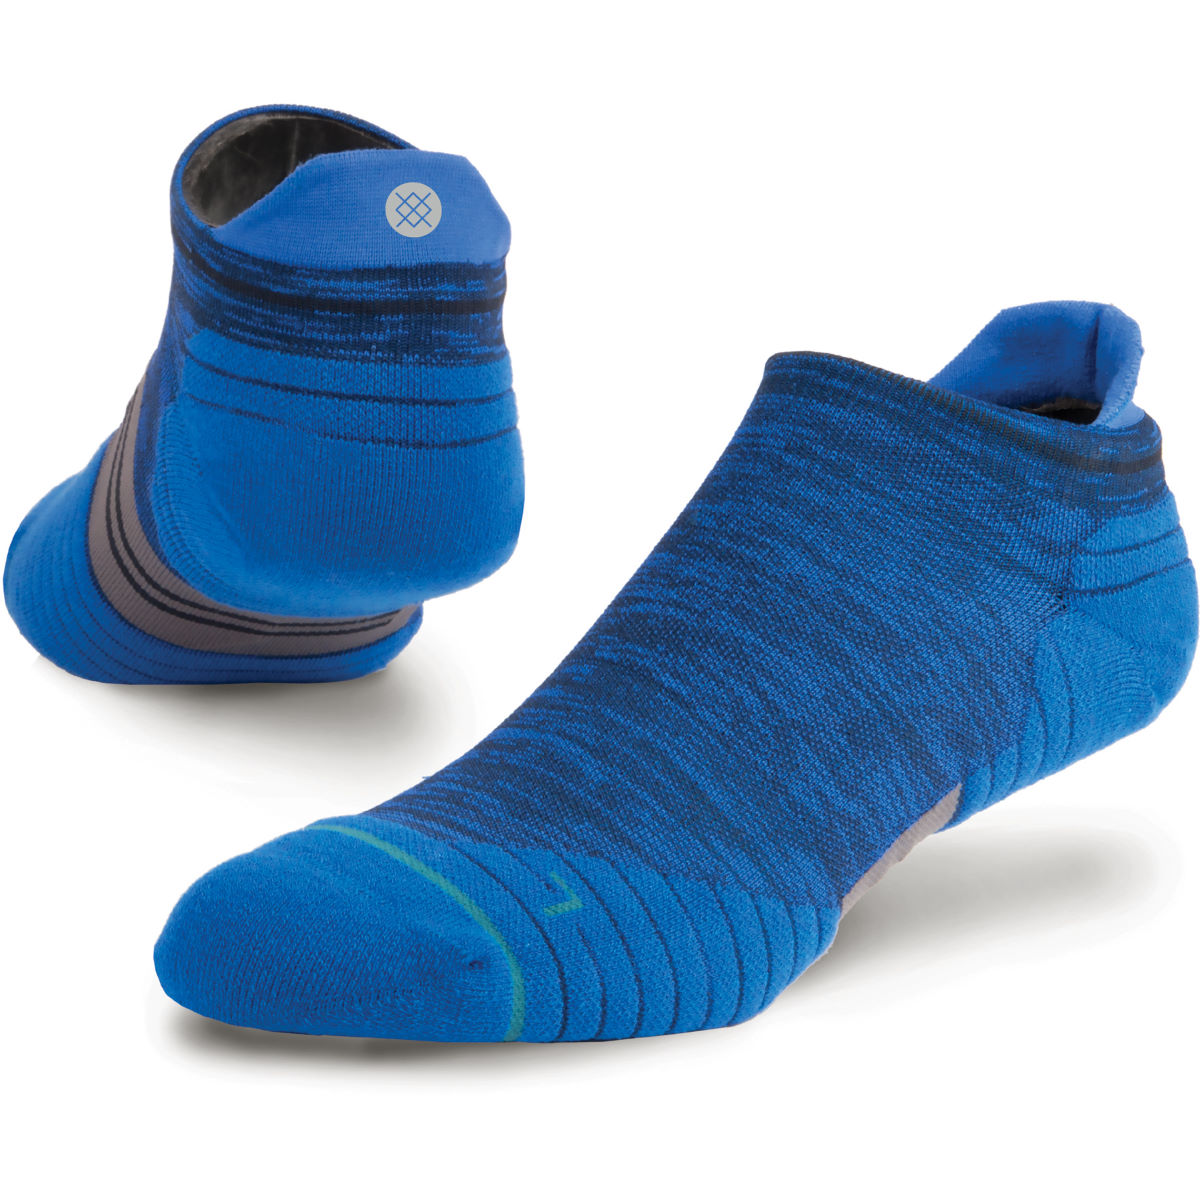 Chaussettes basses Stance Uncommon Solids Tab Run - L Bleu marine